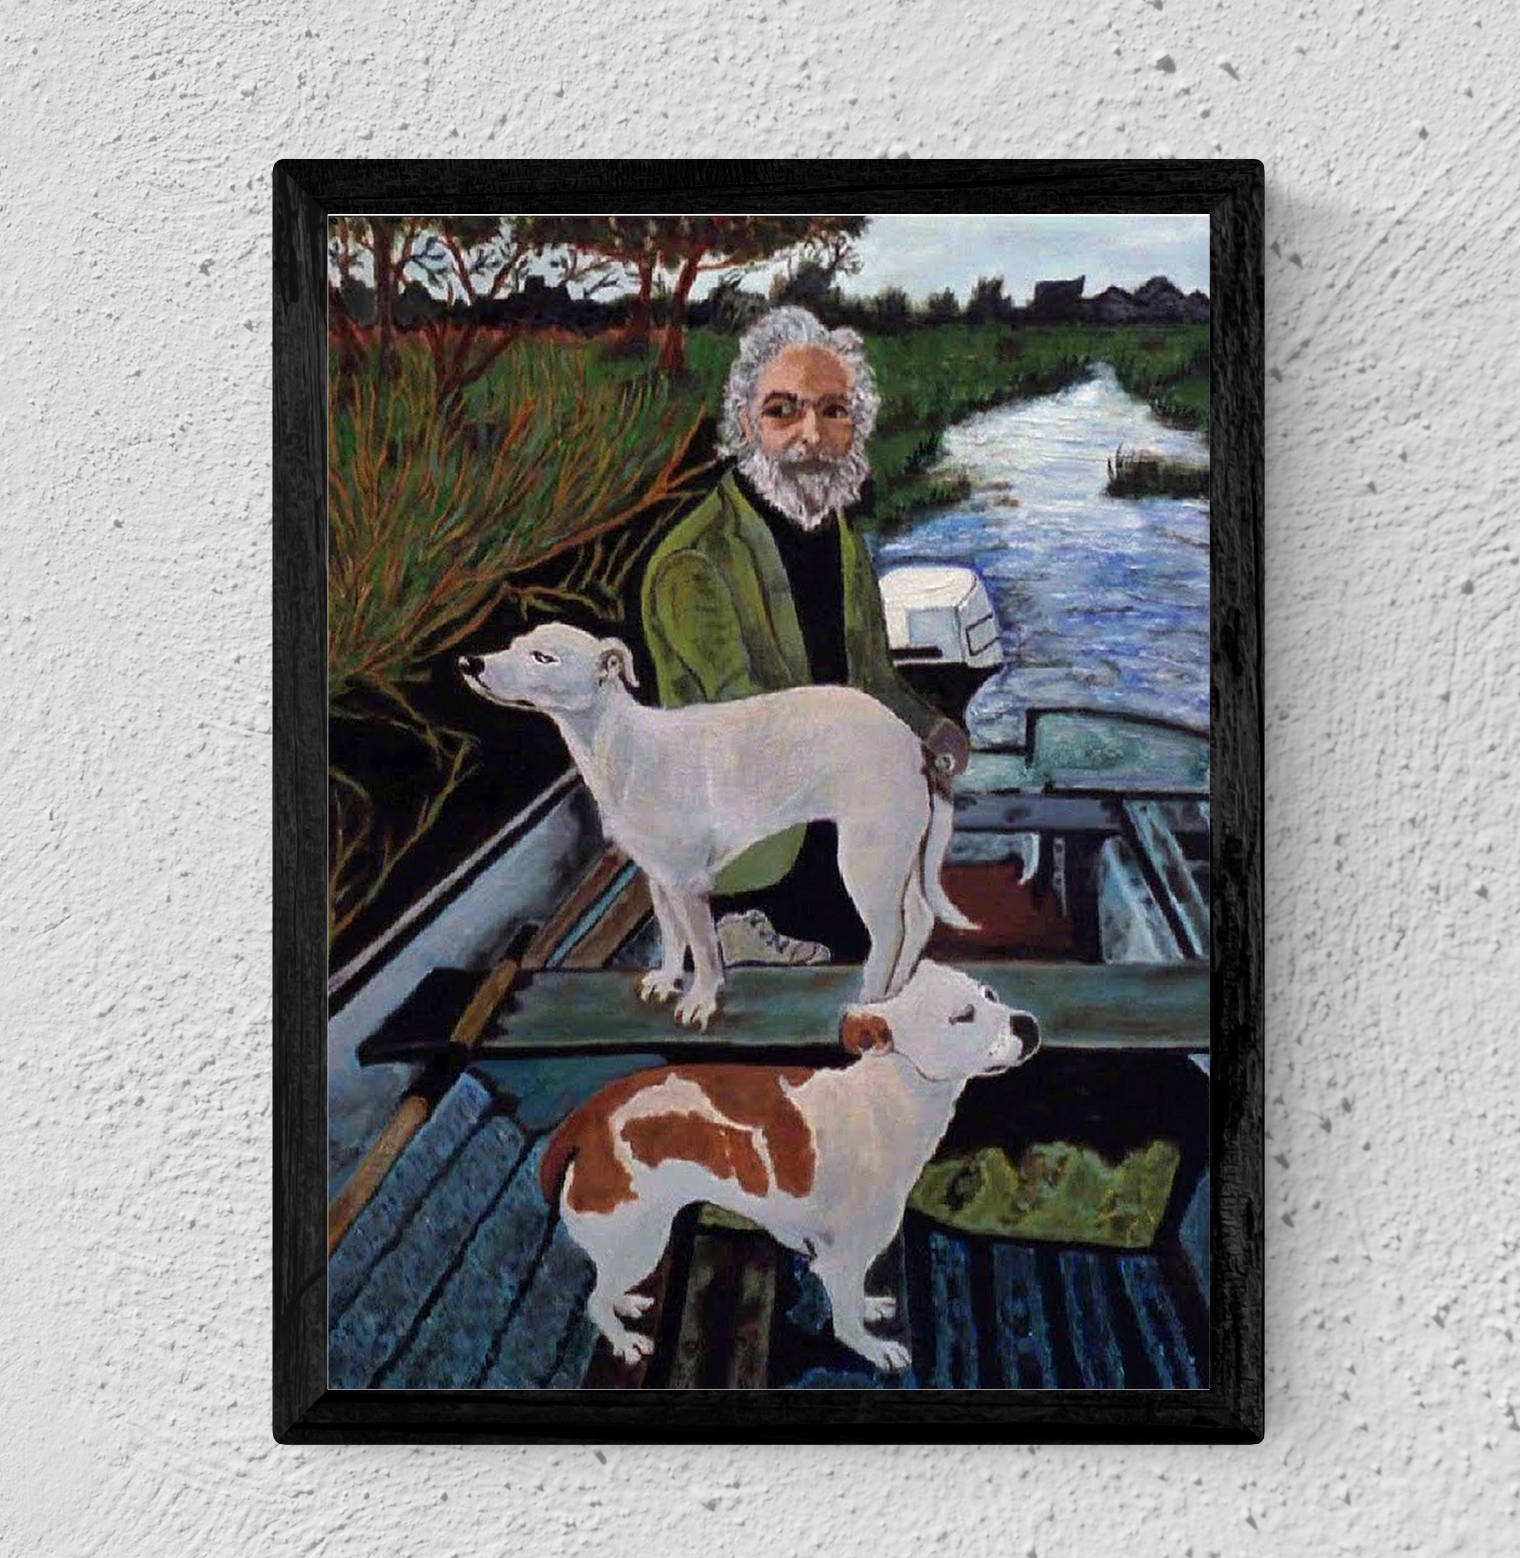 12x16 Goodfellas Movie Poster - Painting Of Old Man With Dogs Done By Tommy poster canvas